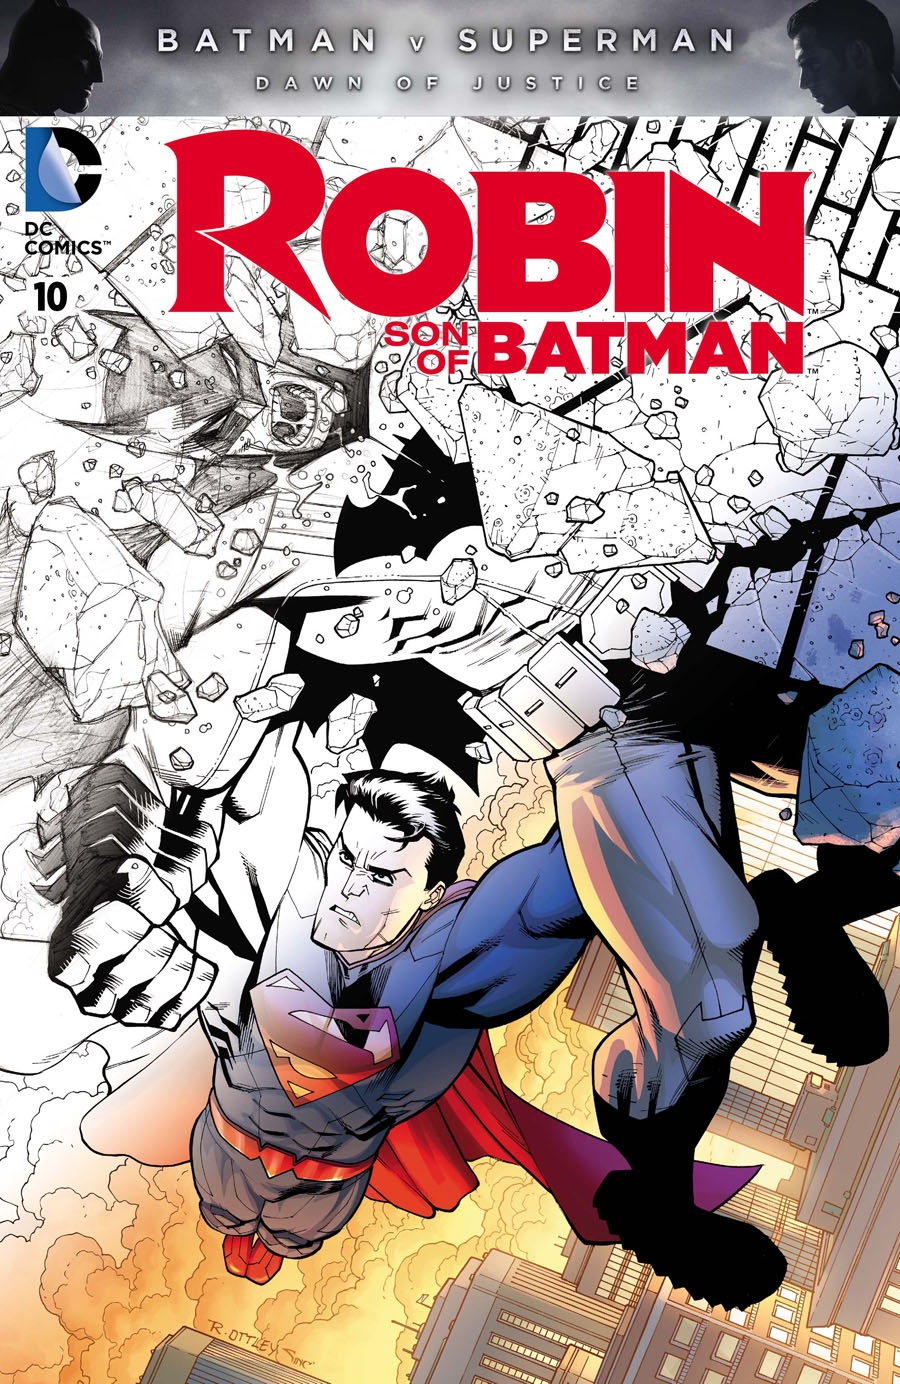 Robin Son Of Batman #10 Cover D Variant Ryan Ottley Batman v Superman Dawn Of Justice Fade Cover Without Polybag